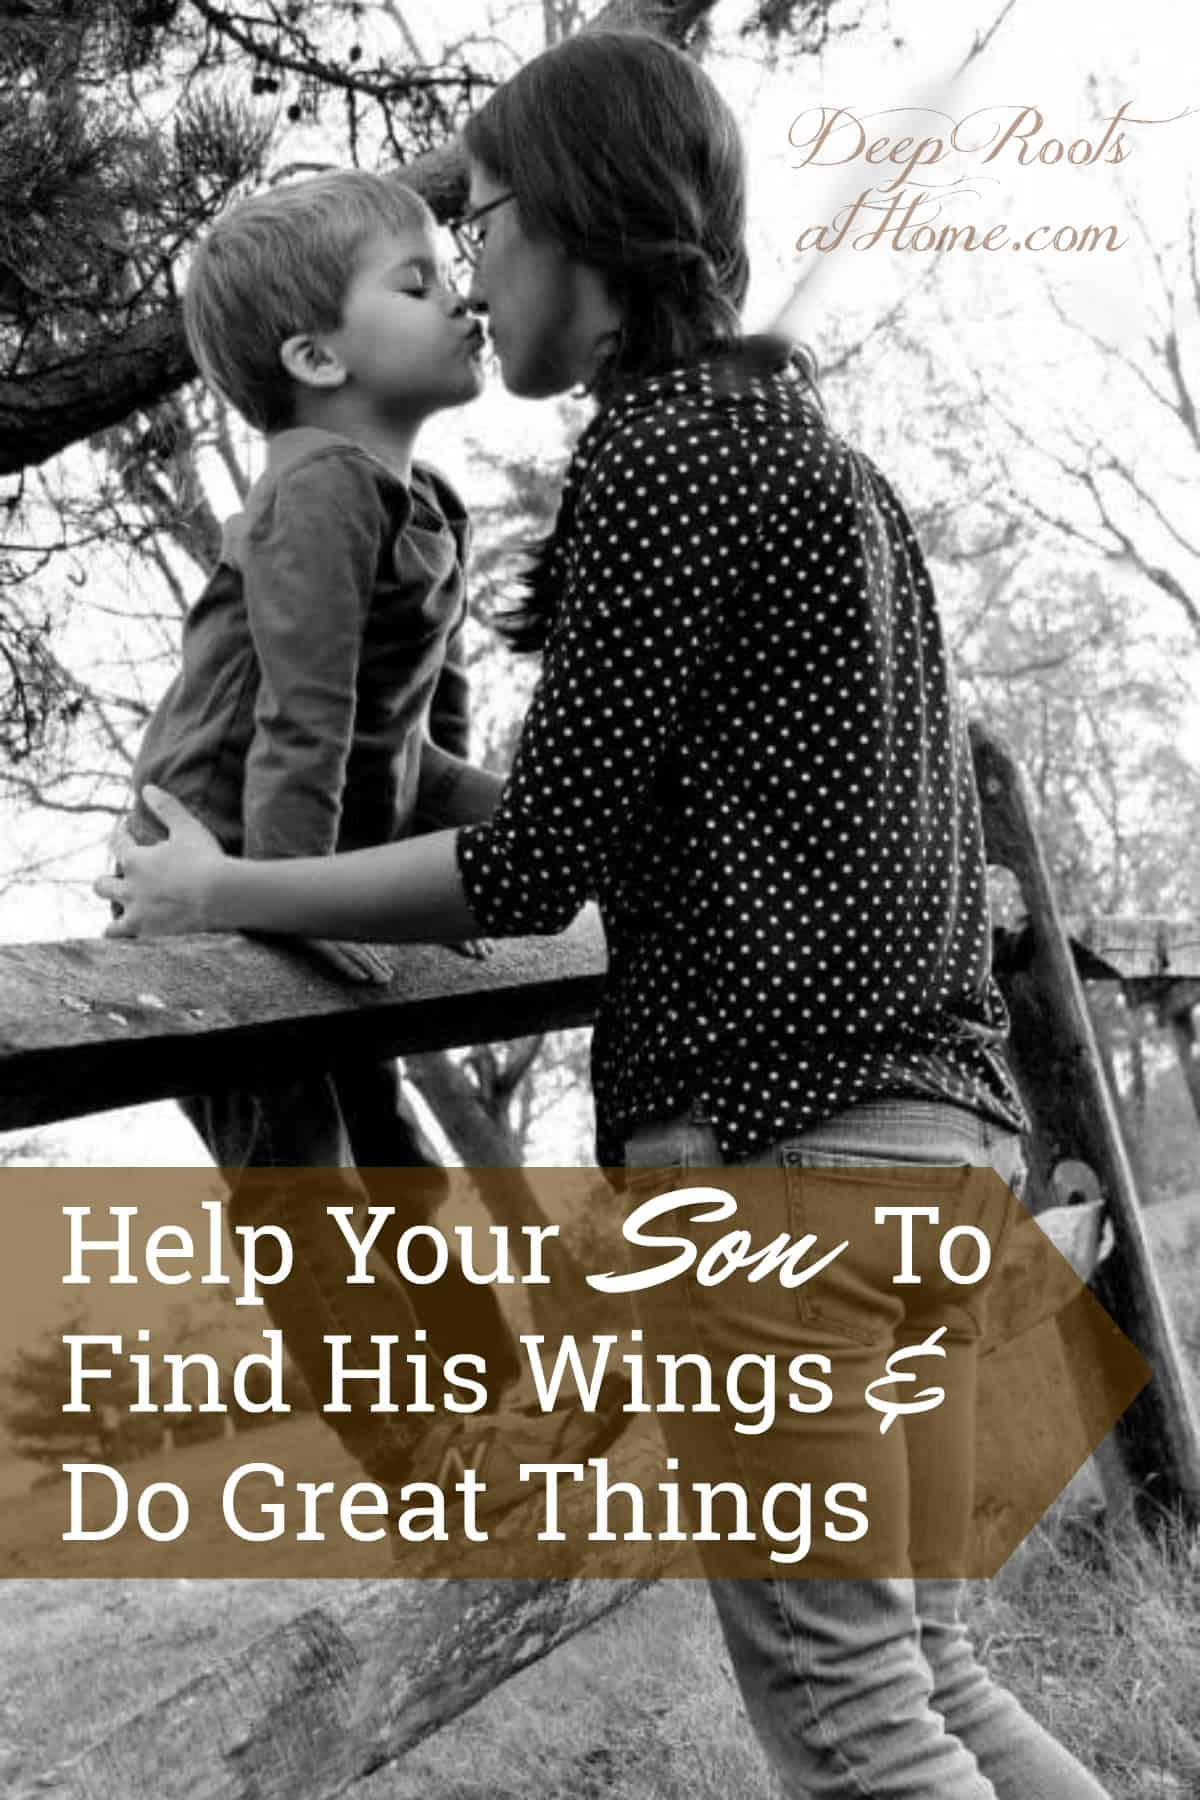 Help Your Son To Find His Wings & Do Great Things. A mother and her son climbing on a fence sharing bonding time.